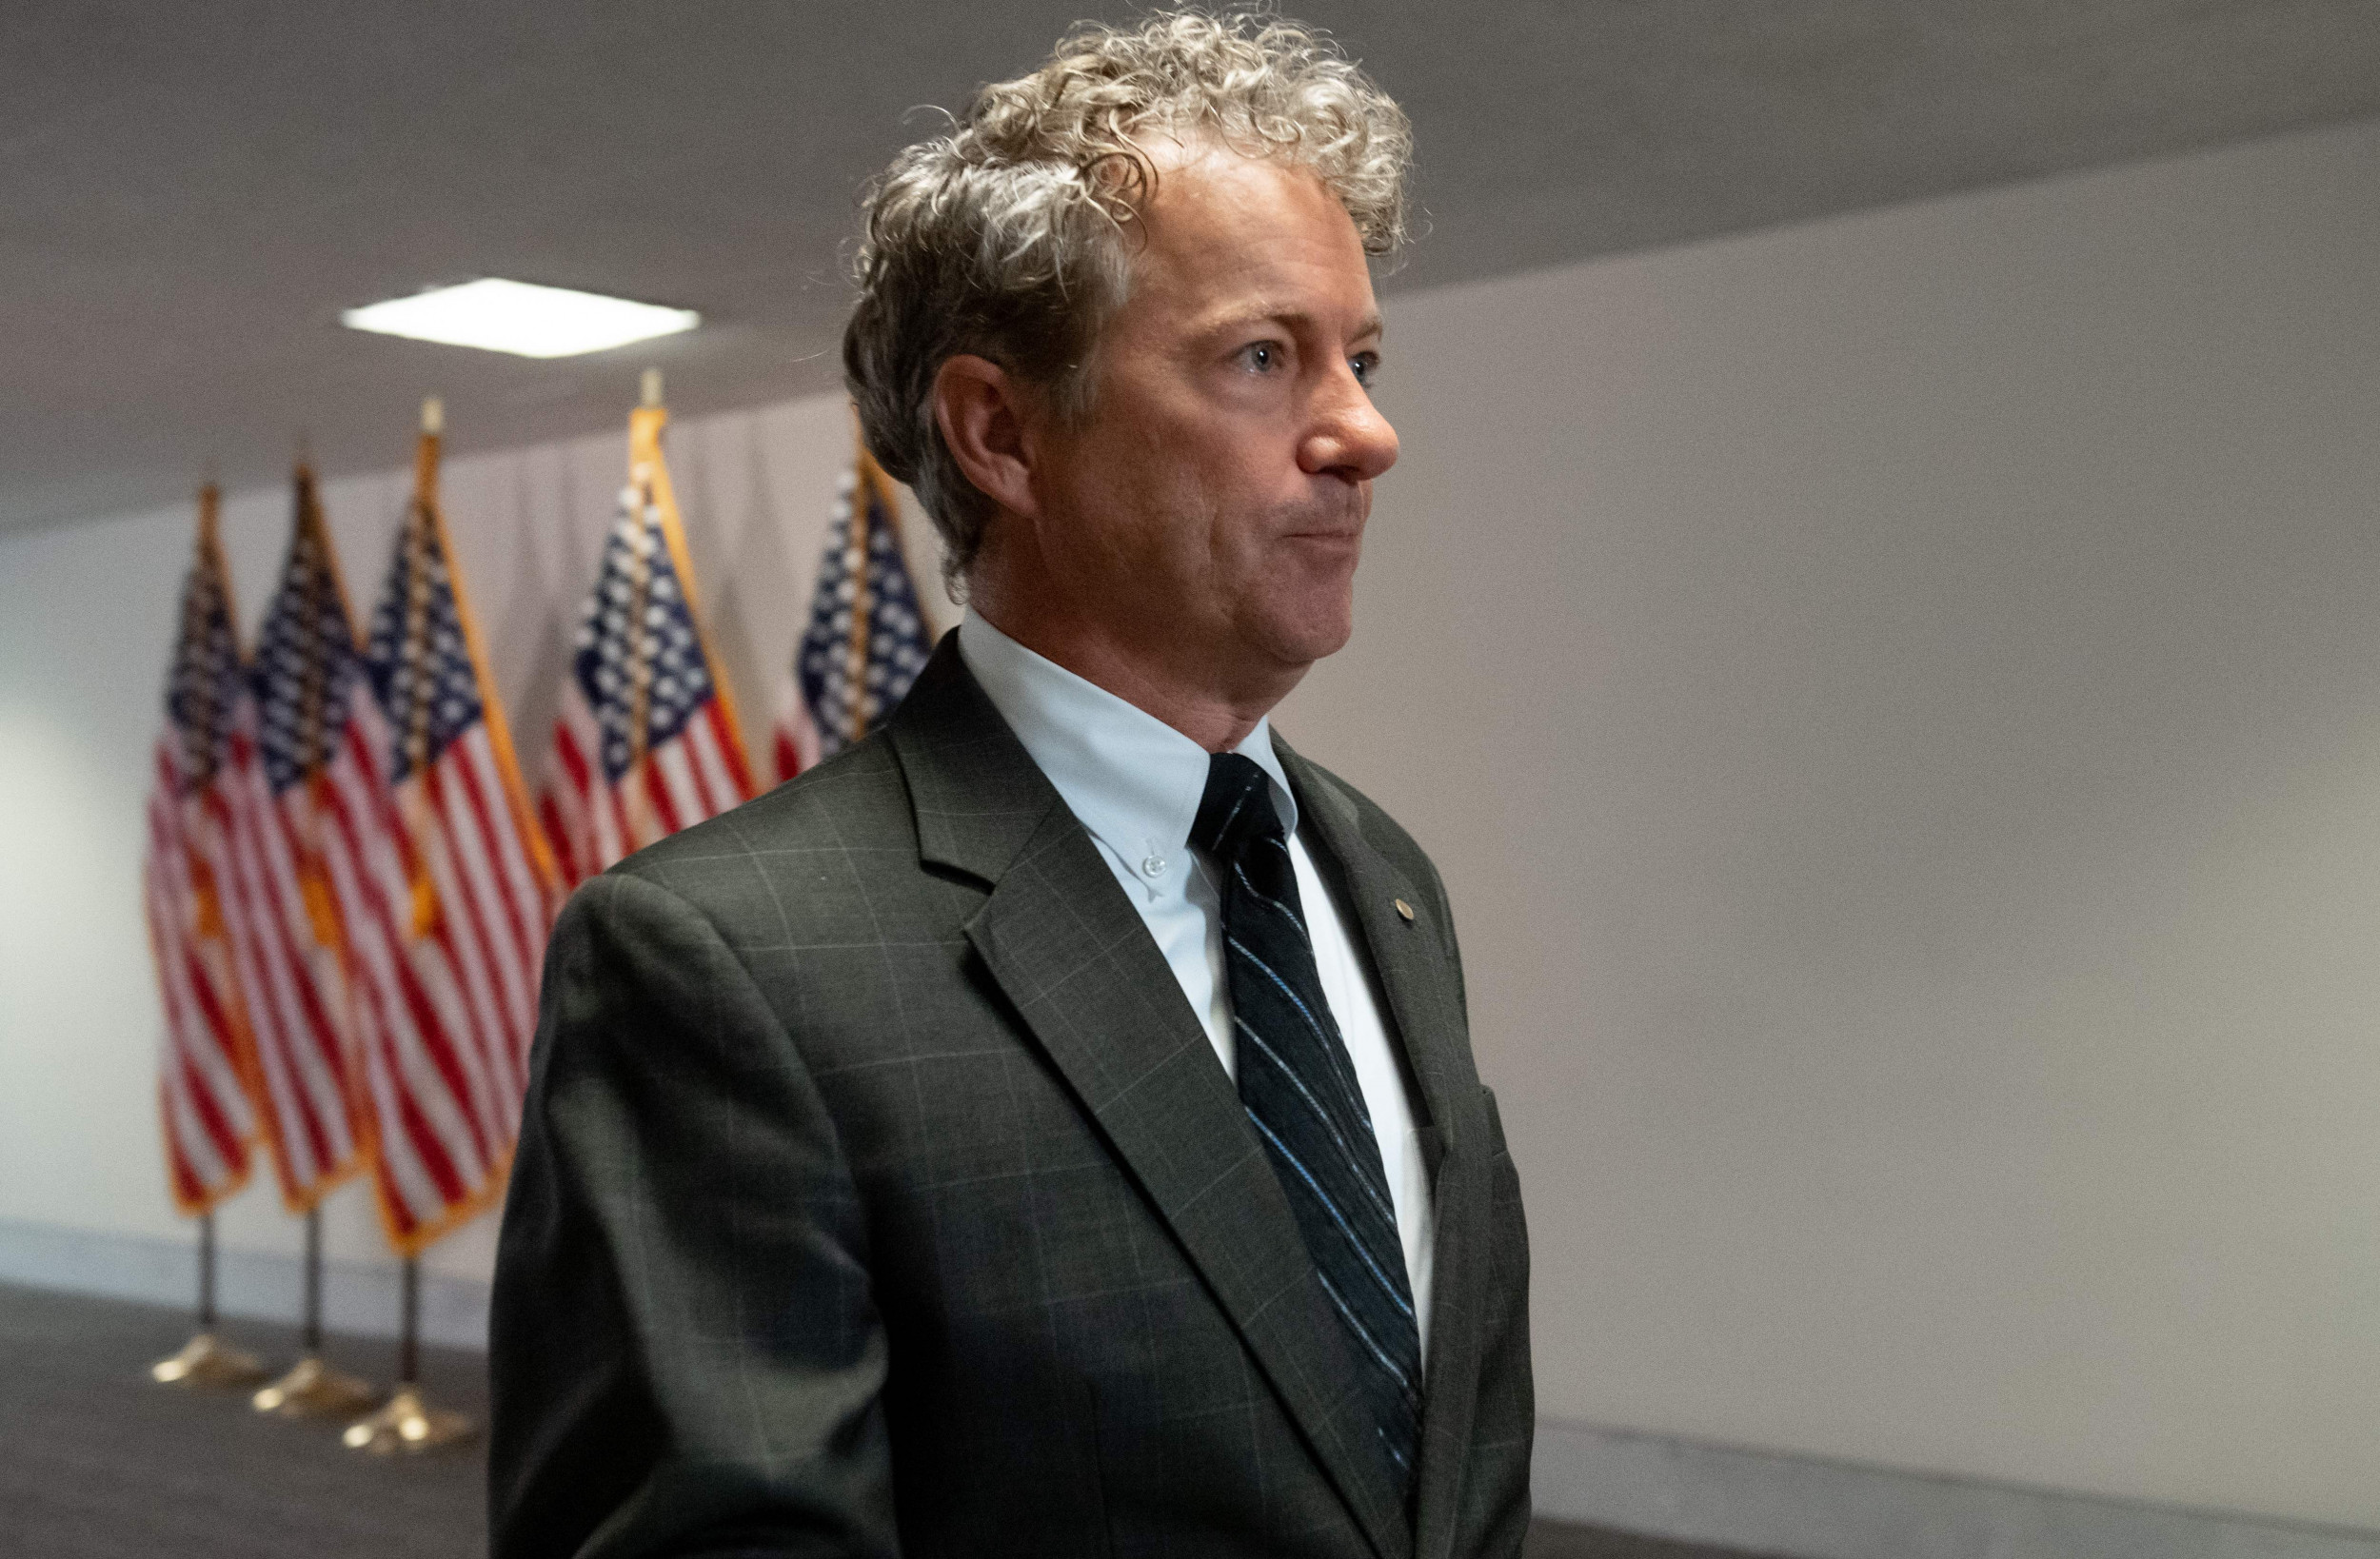 """Rand Paul sparks backlash with vote count """"anomaly"""" tweet"""